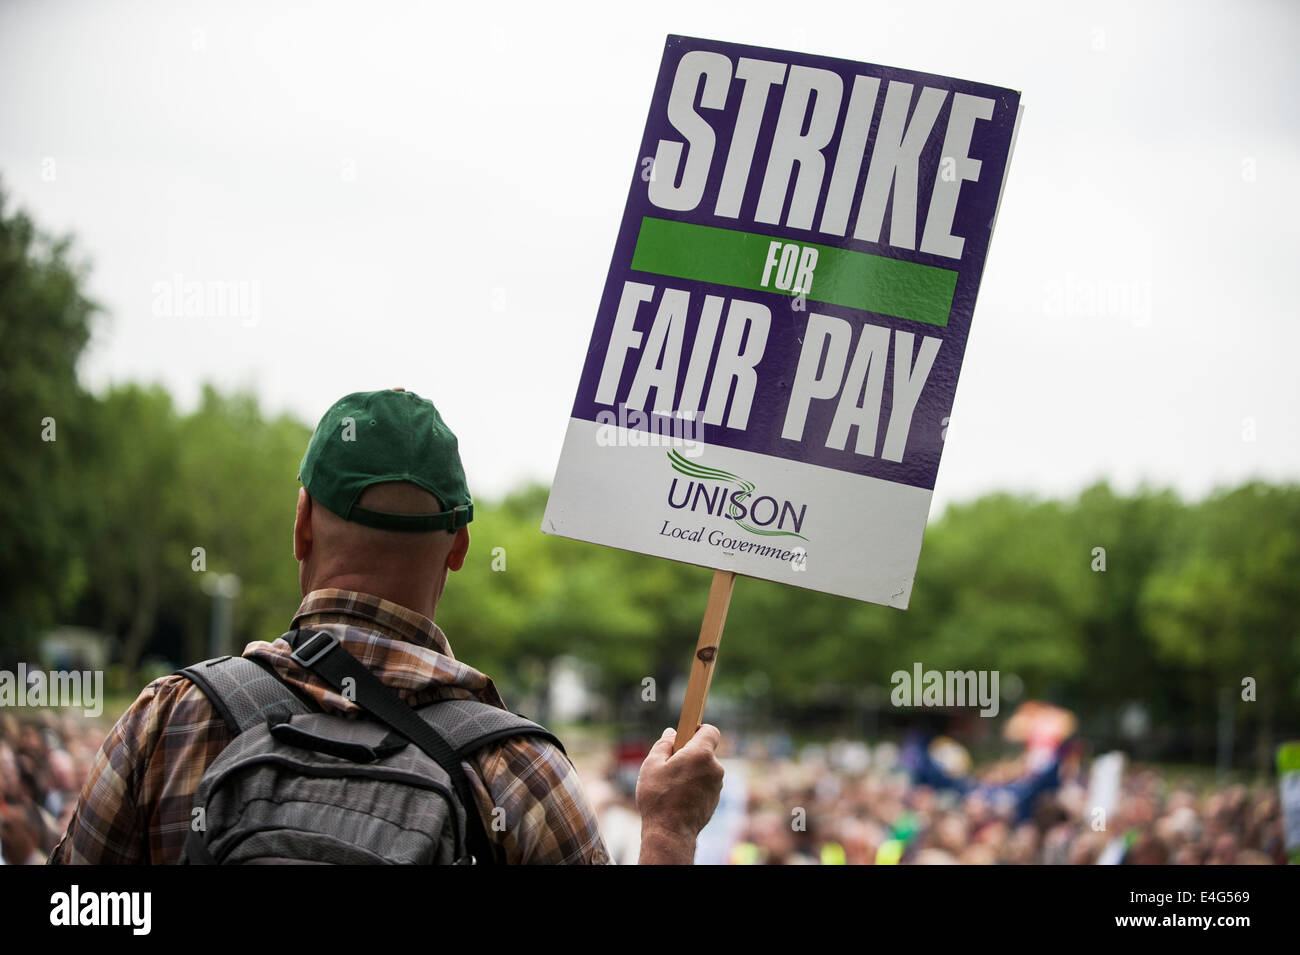 Brighton, UK. 10th July 2014. Public sector workers march to The Level in Brighton for the 10th July National strikes, - Stock Image